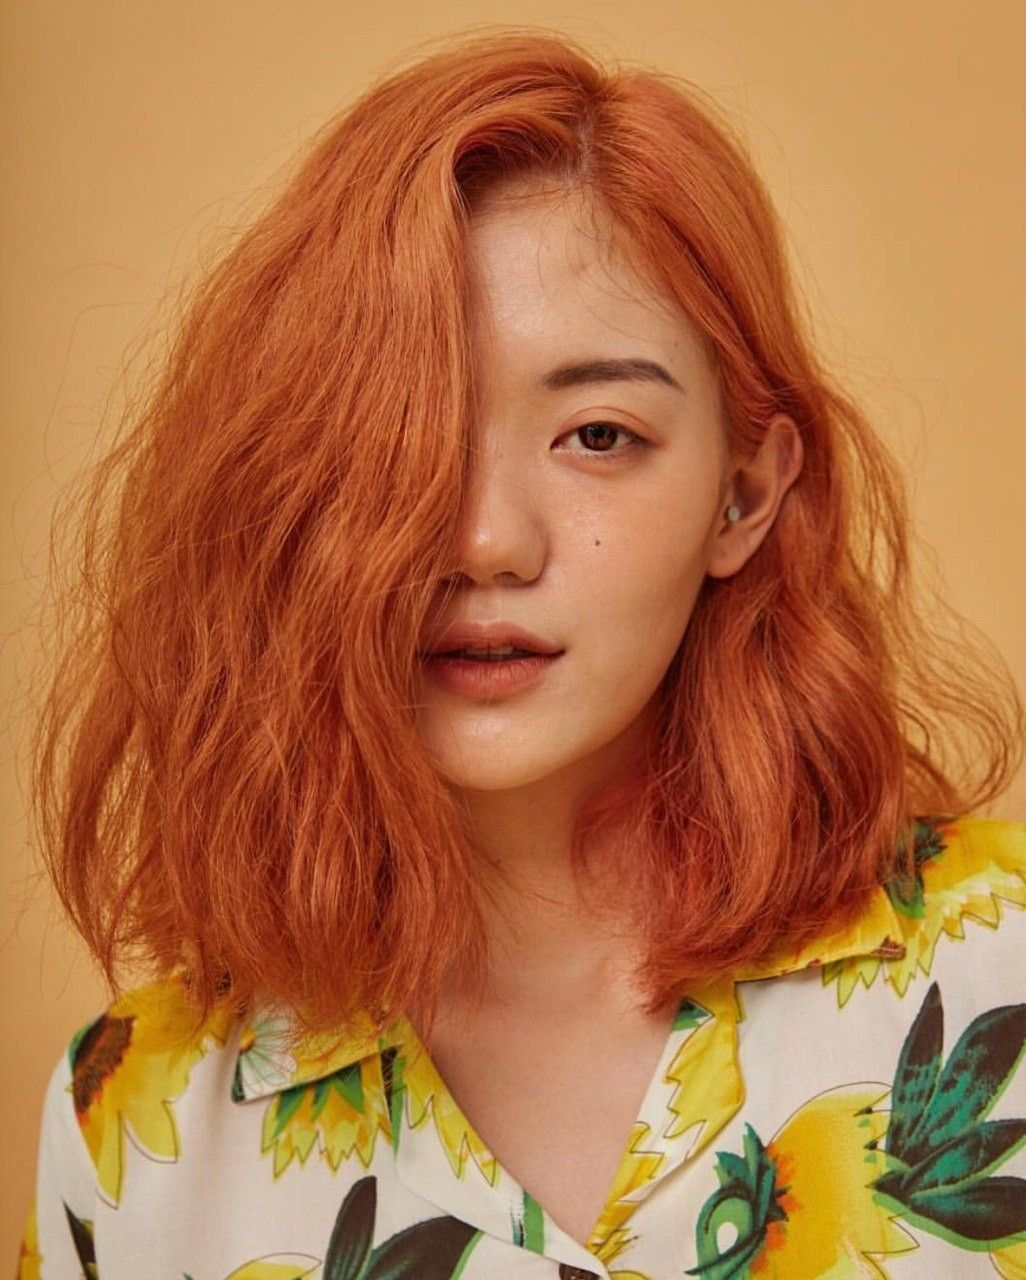 Pin By Bayla Cortijo On Aesthetic Photography Pinterest Hair